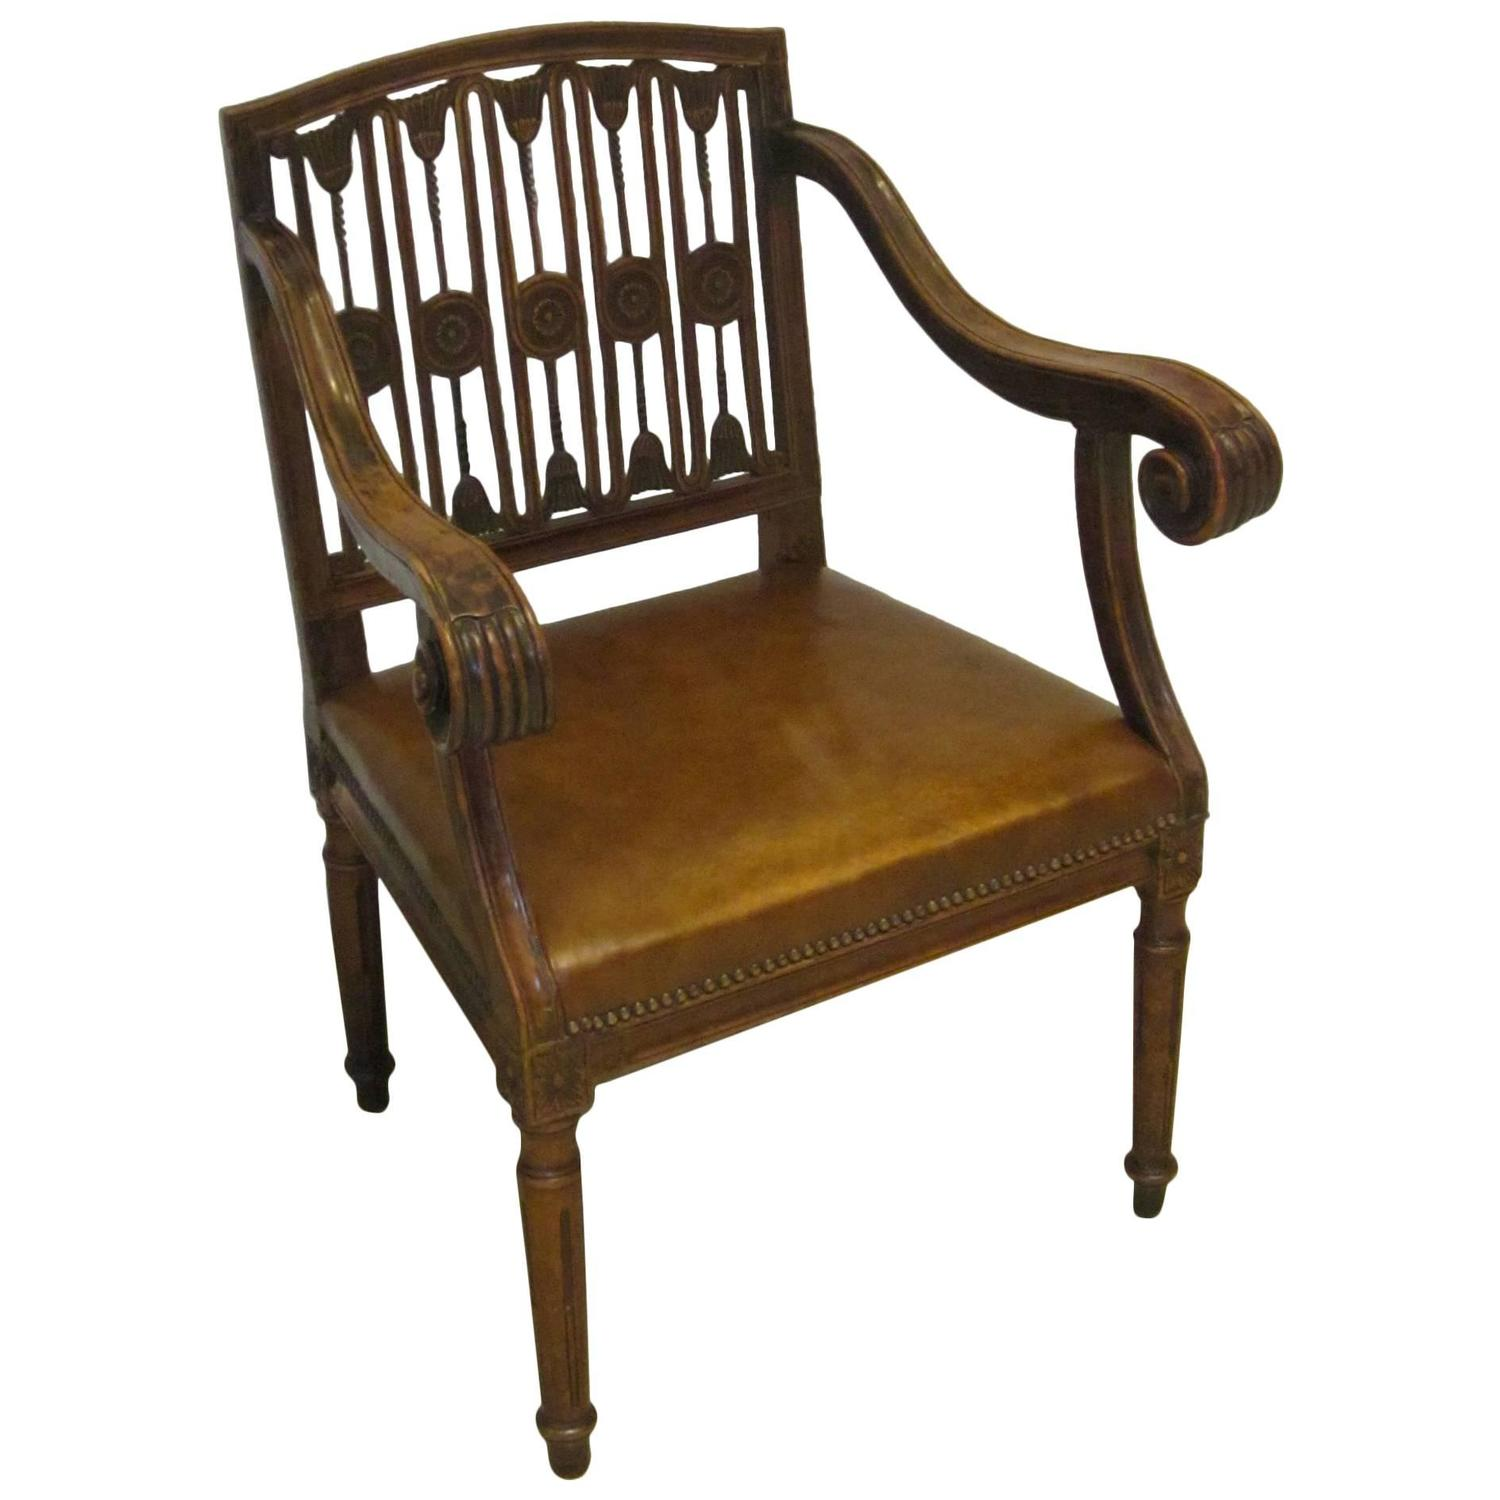 Th century desk chair scroll arm and leather seat